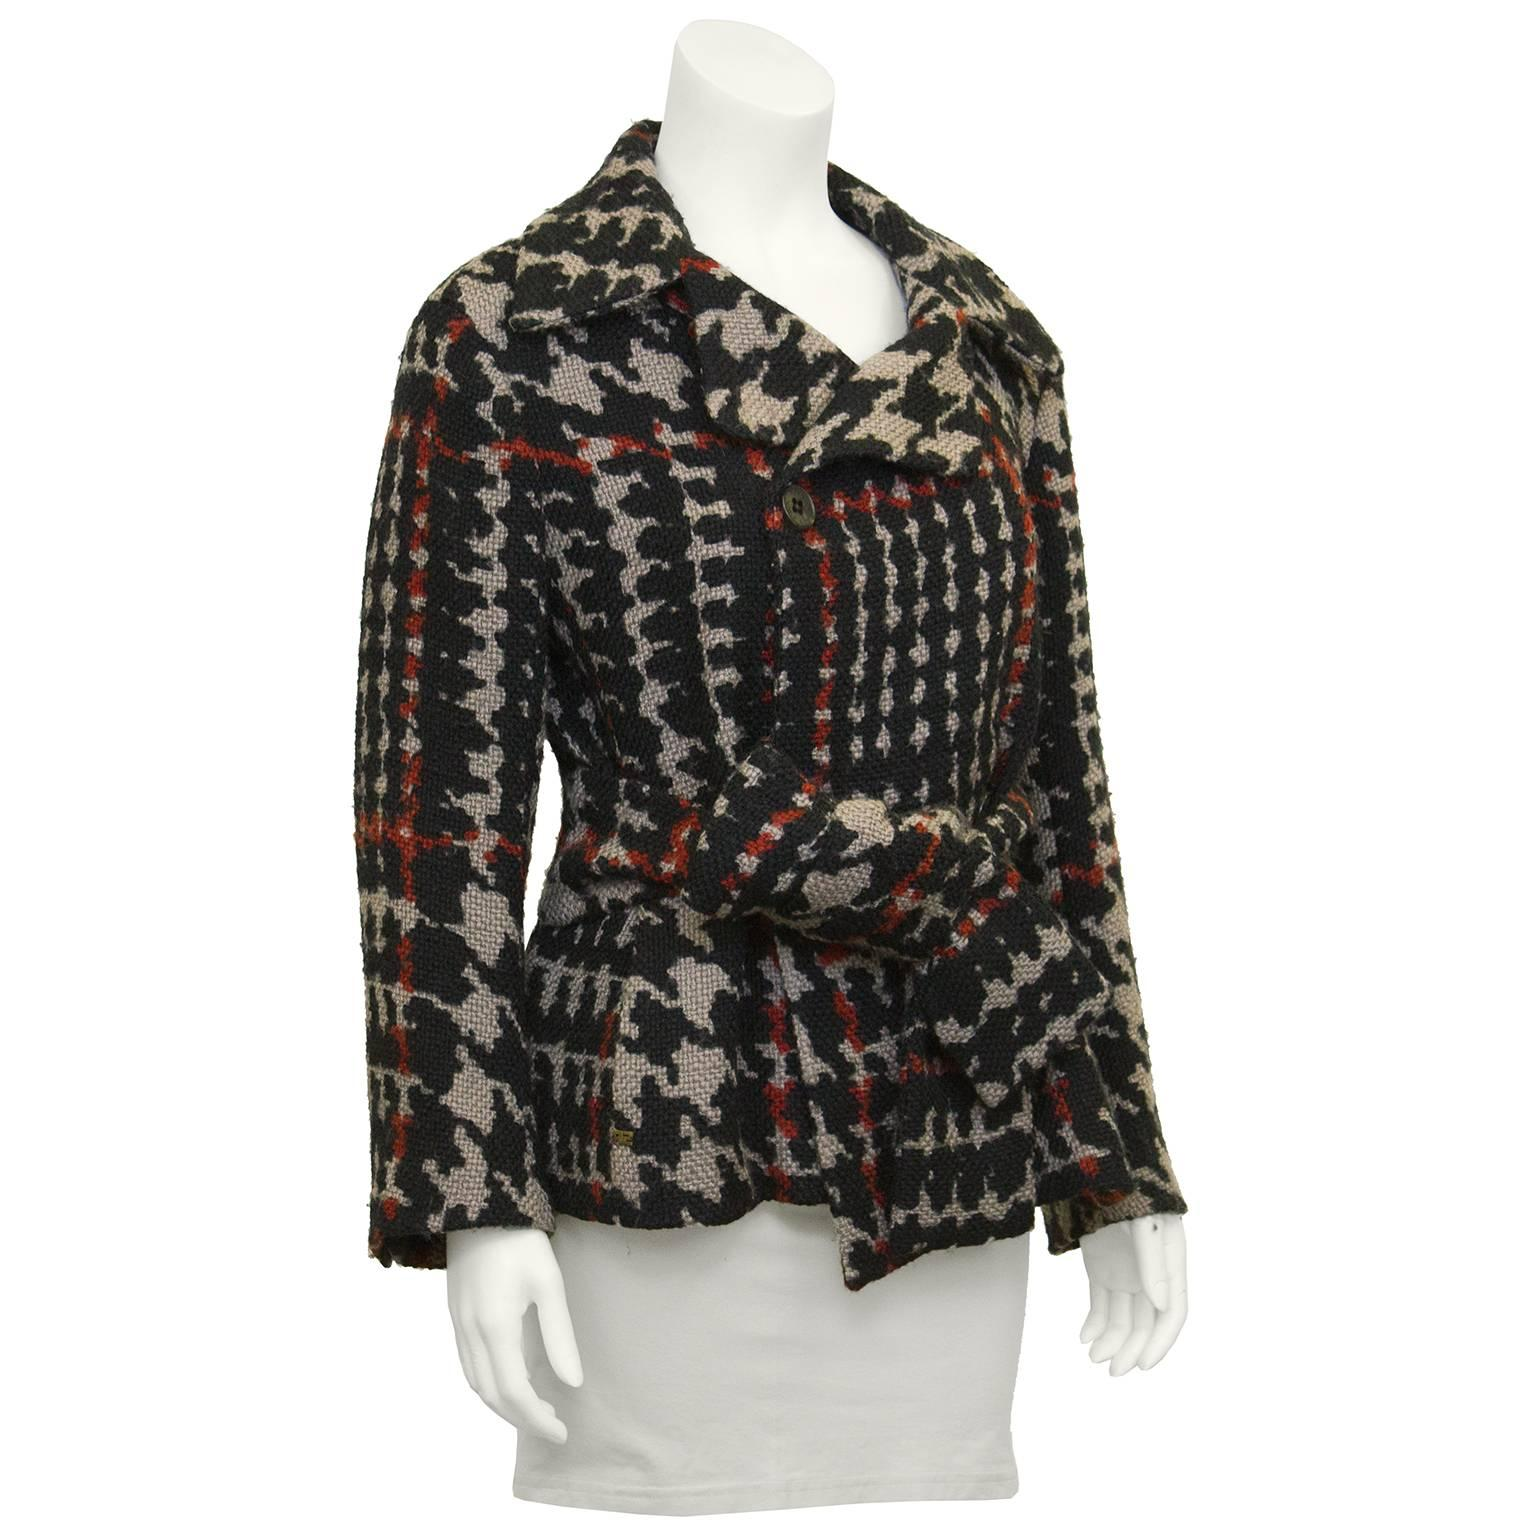 780fbc6b46c 1980's Sonia Rykiel Houndstooth Belted Wool Jacket For Sale at 1stdibs